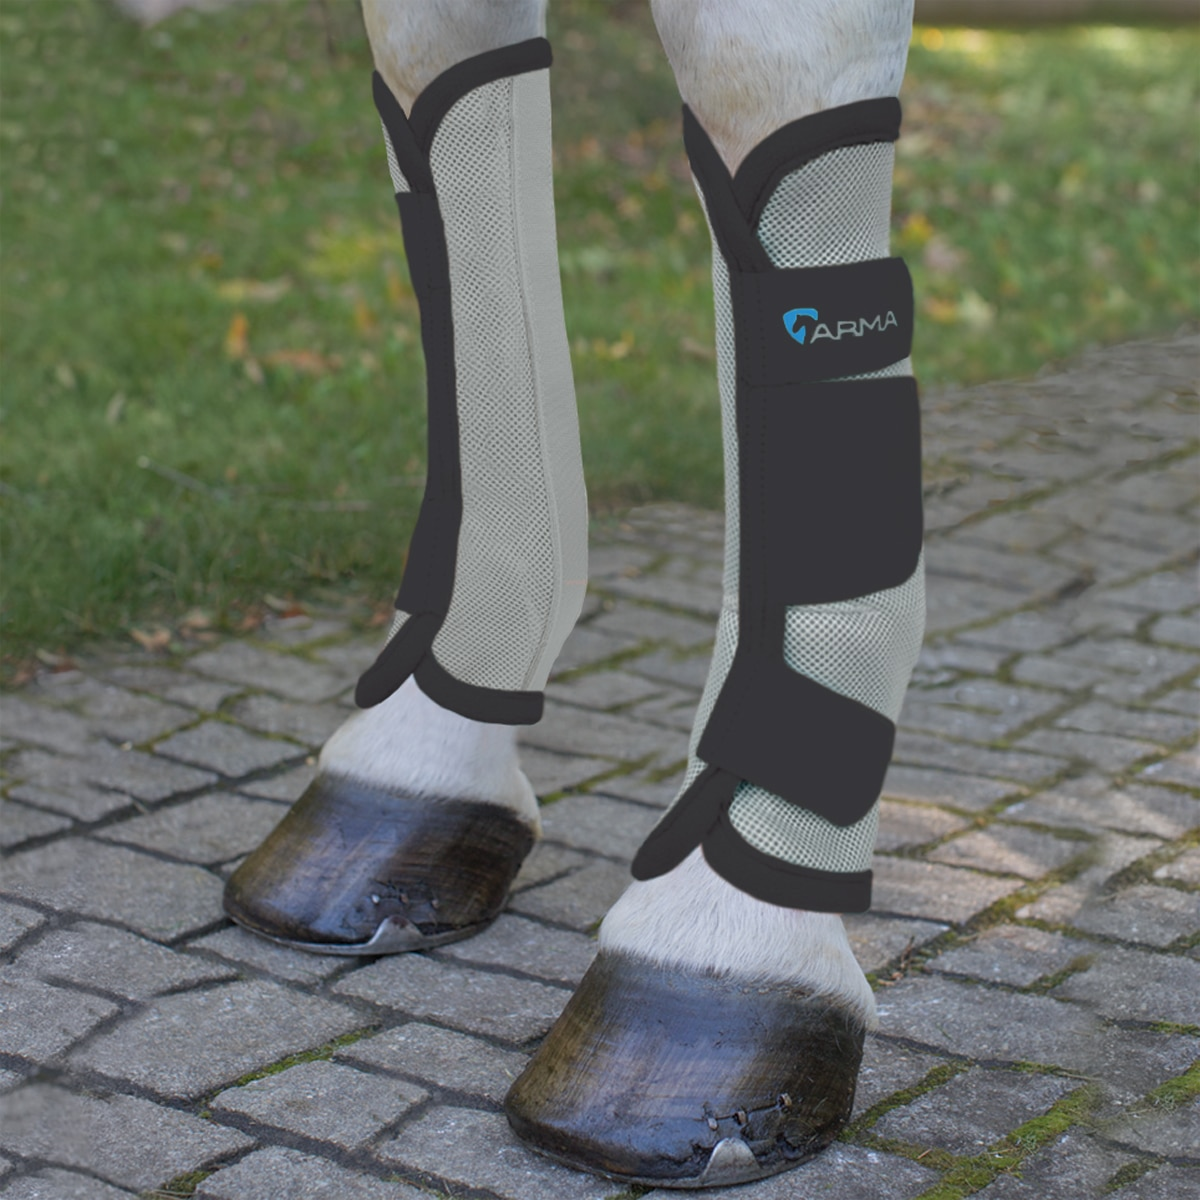 Shires Arma Airflow Fly Boots